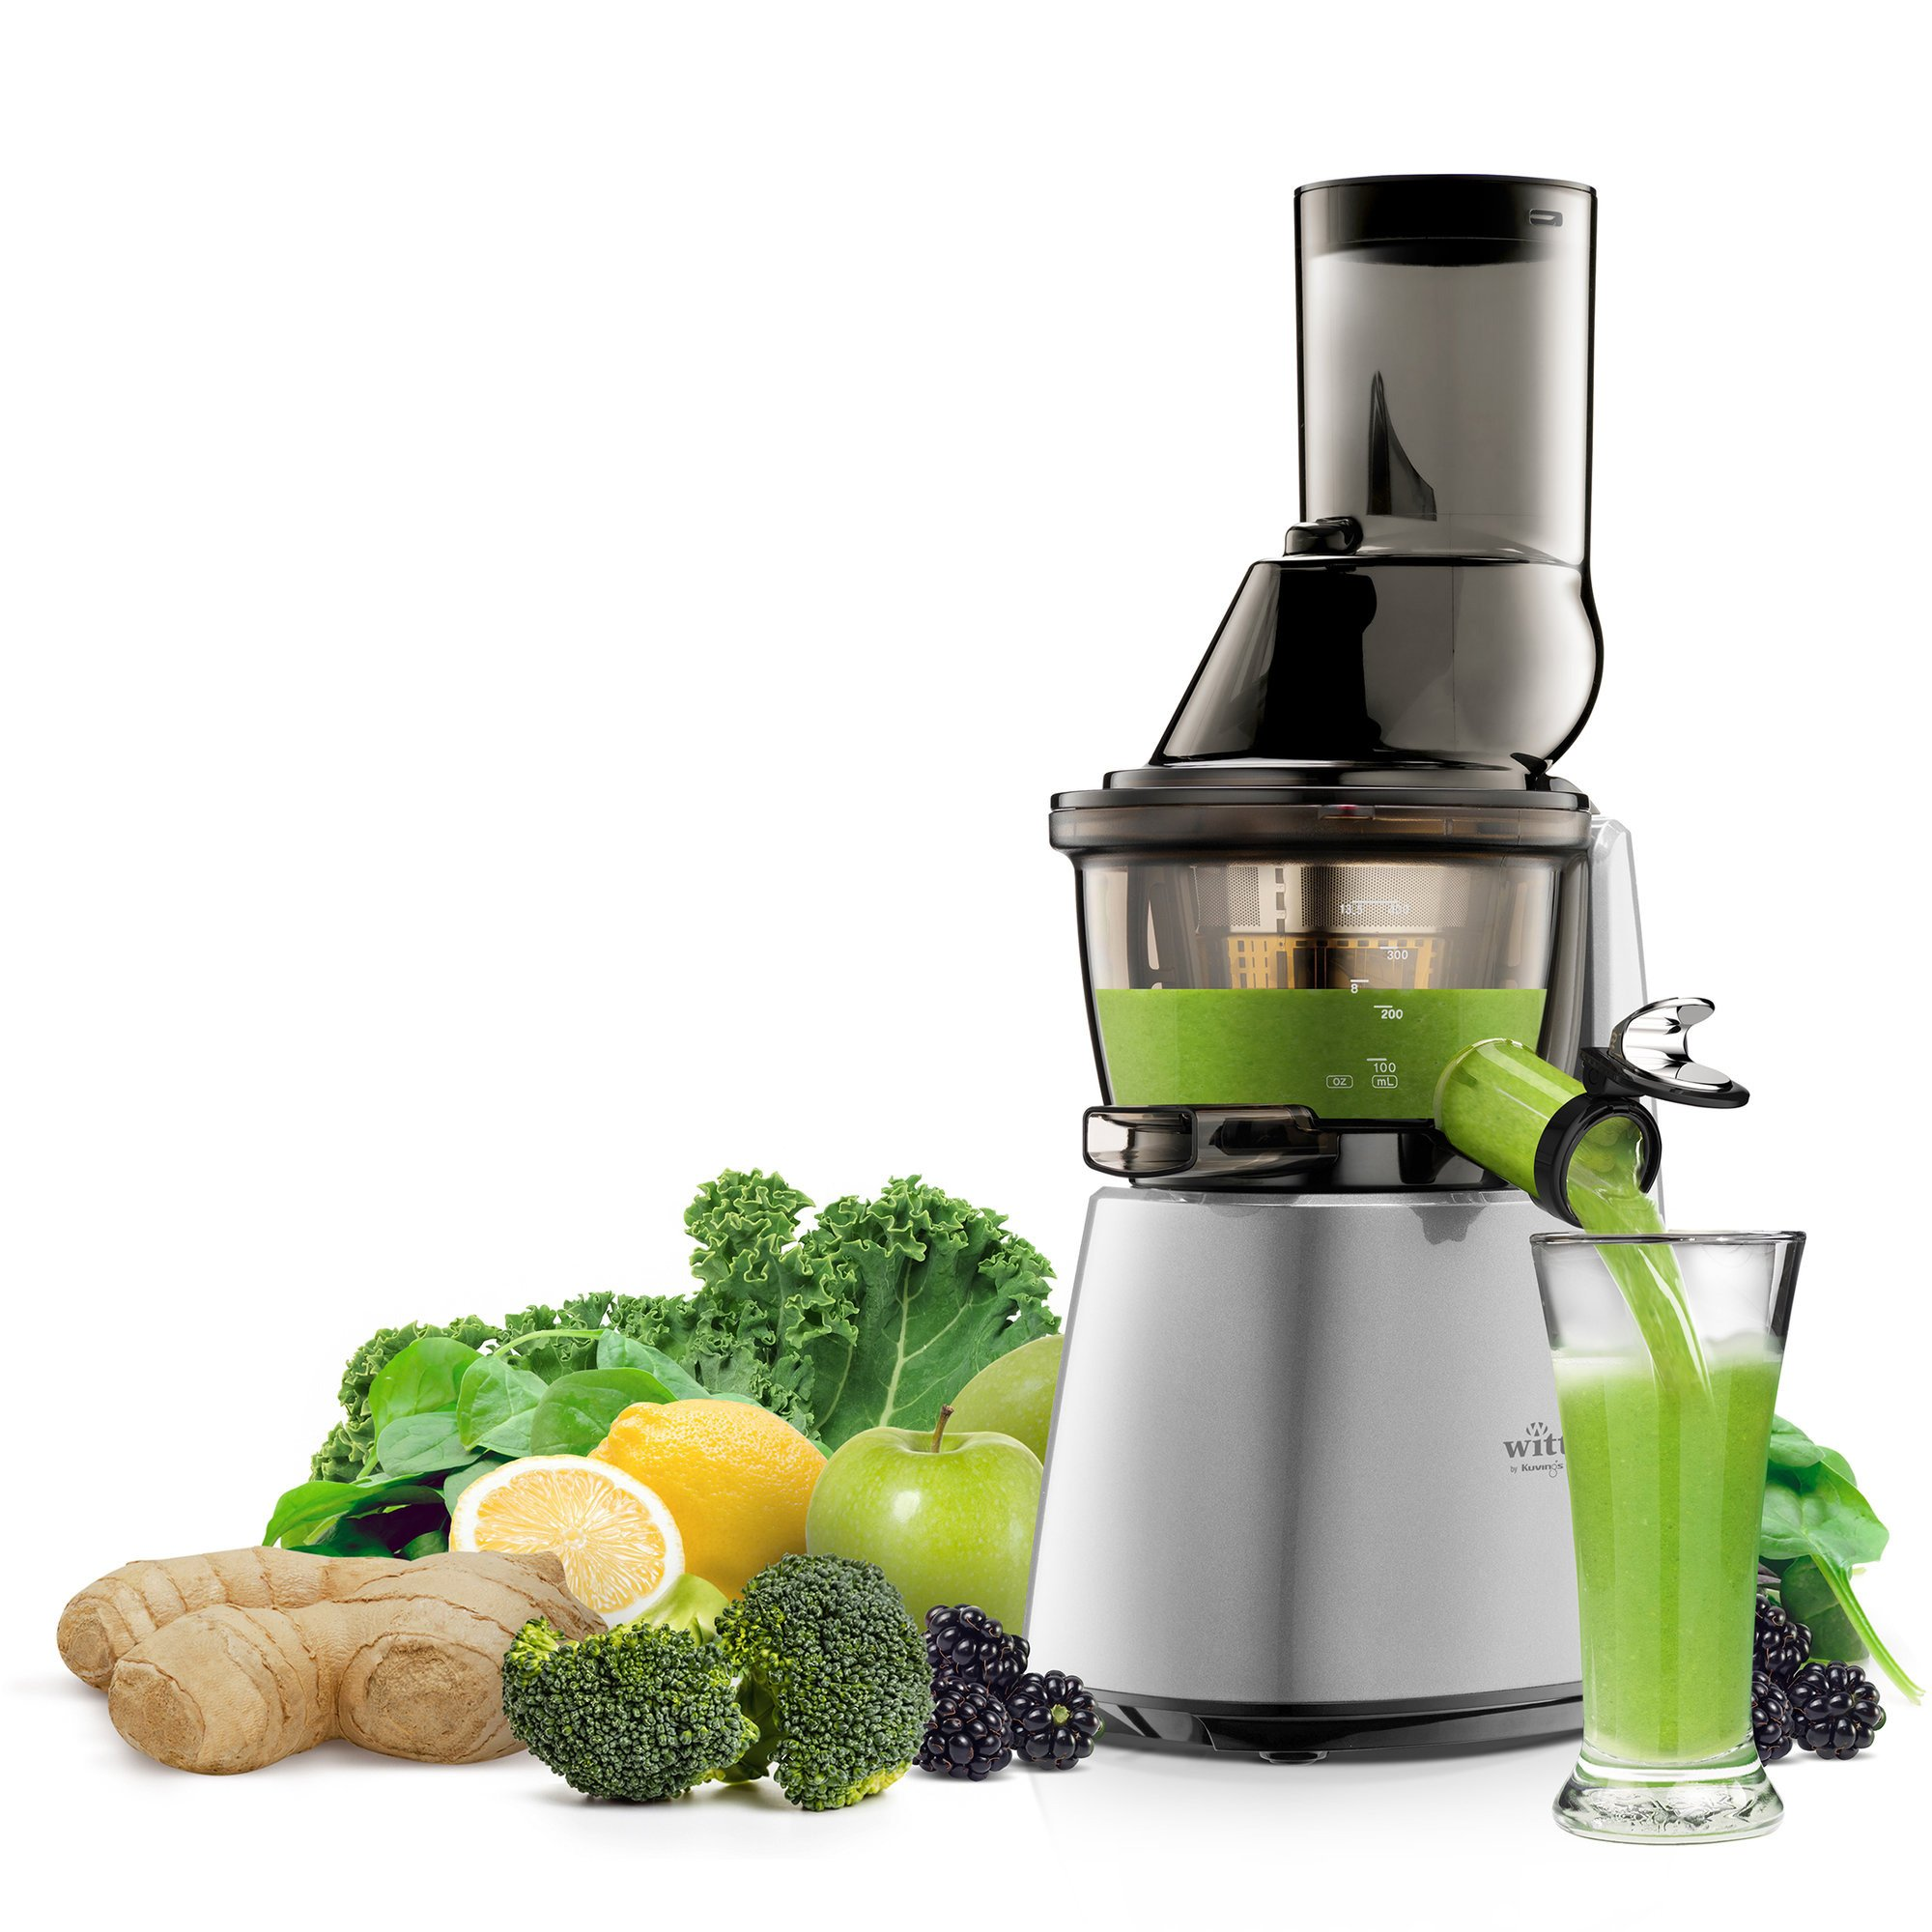 Witt By Kuvings Slow Juicer Review : Best?ll C9600 S Slow Juicer silver fran Witt by Kuvings